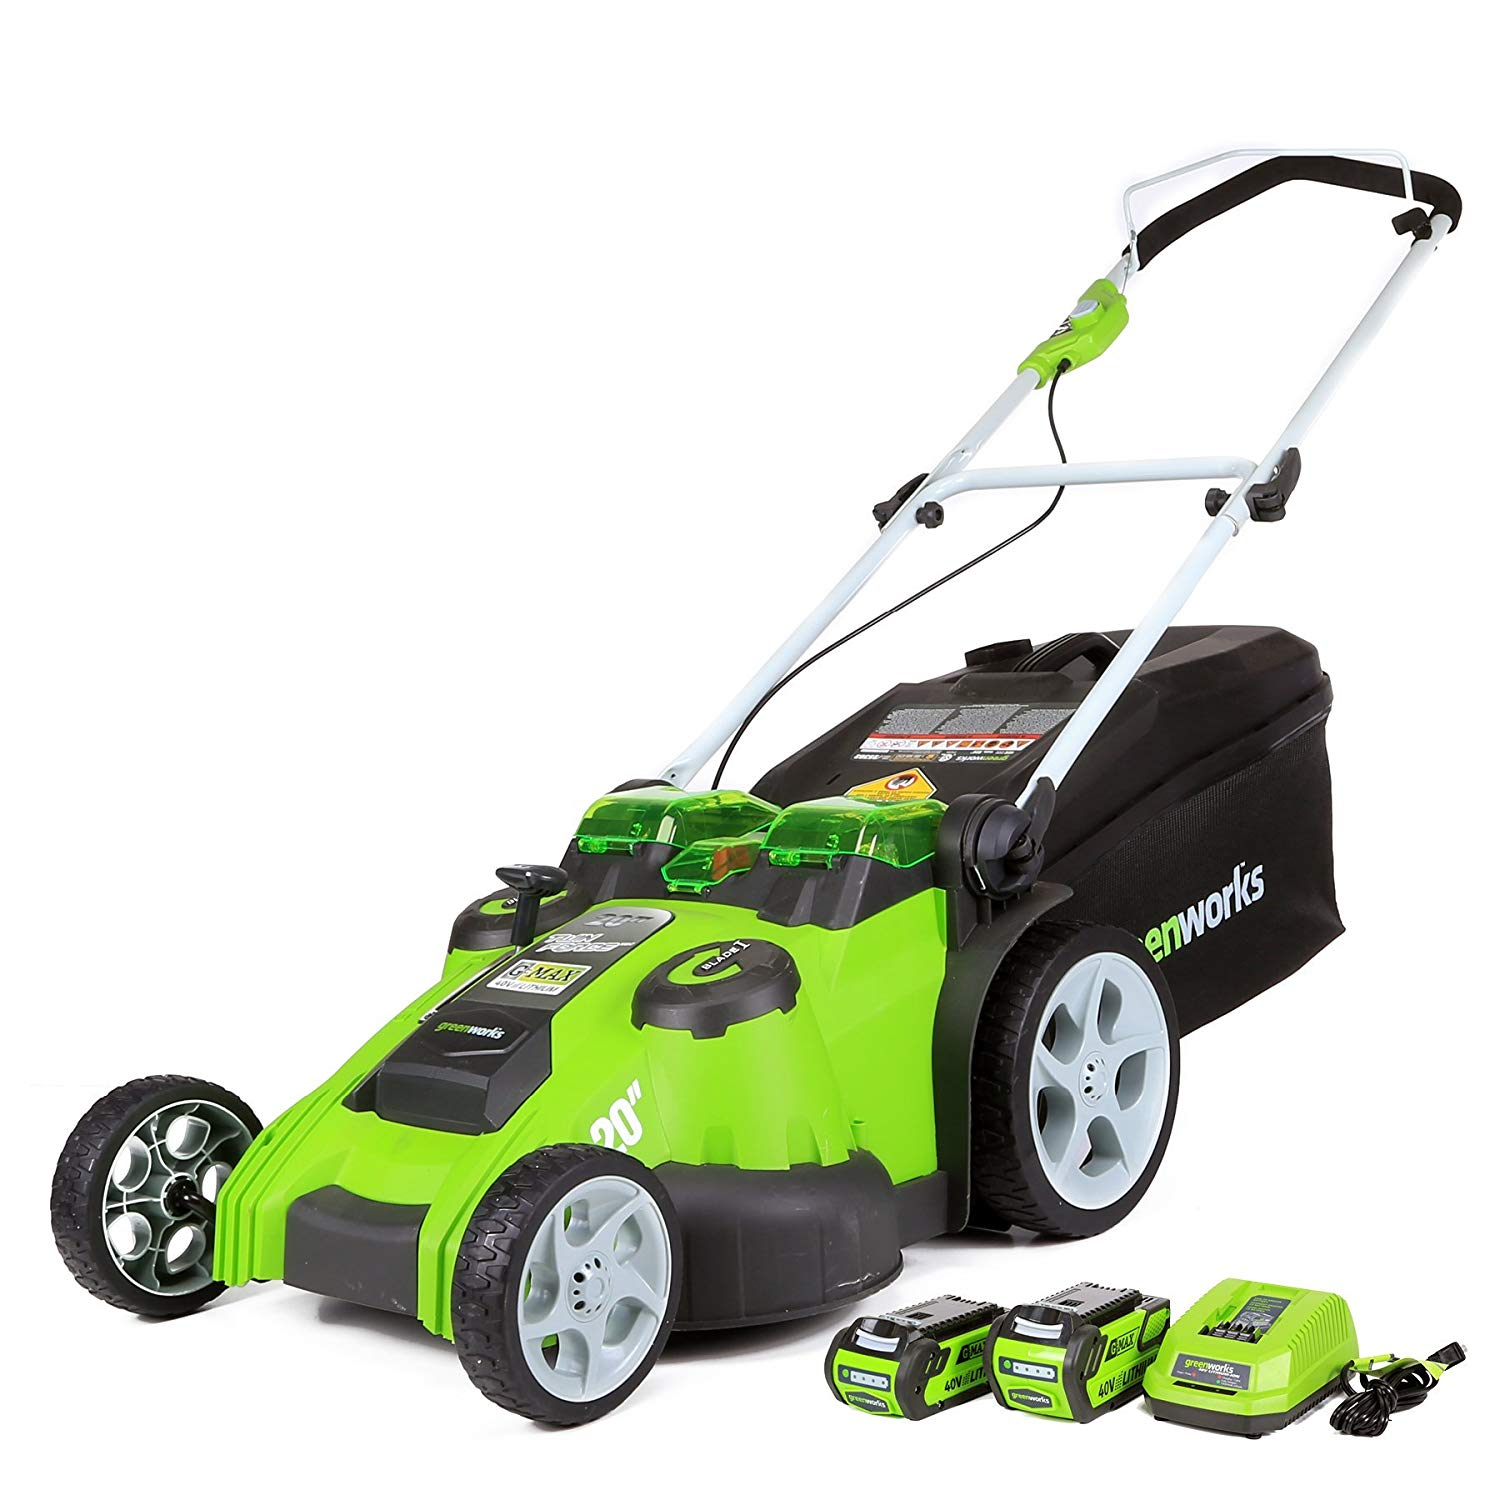 (25302) 20-Inch Cordless Lawn Mower From Greenworks with Battery and Charger